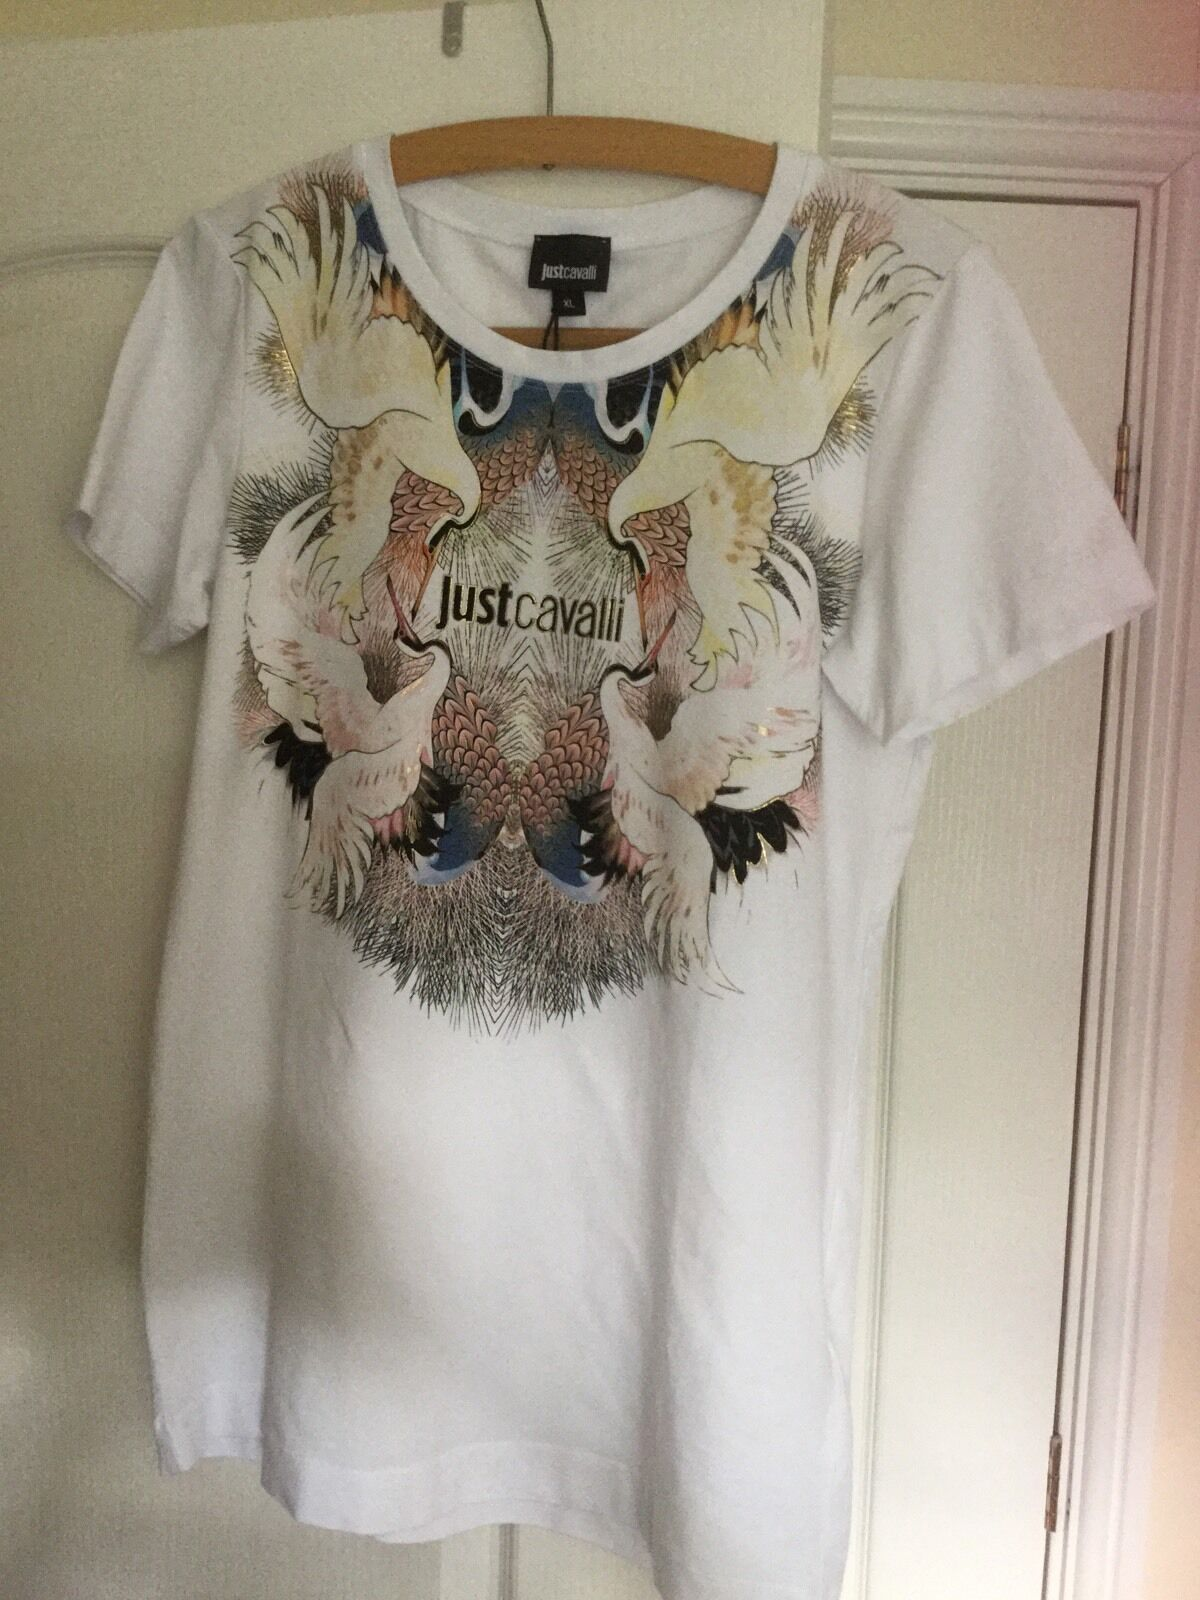 Roberto Cavalli Just Cavalli ladies top tshirt  BNWT authentic Größe XL